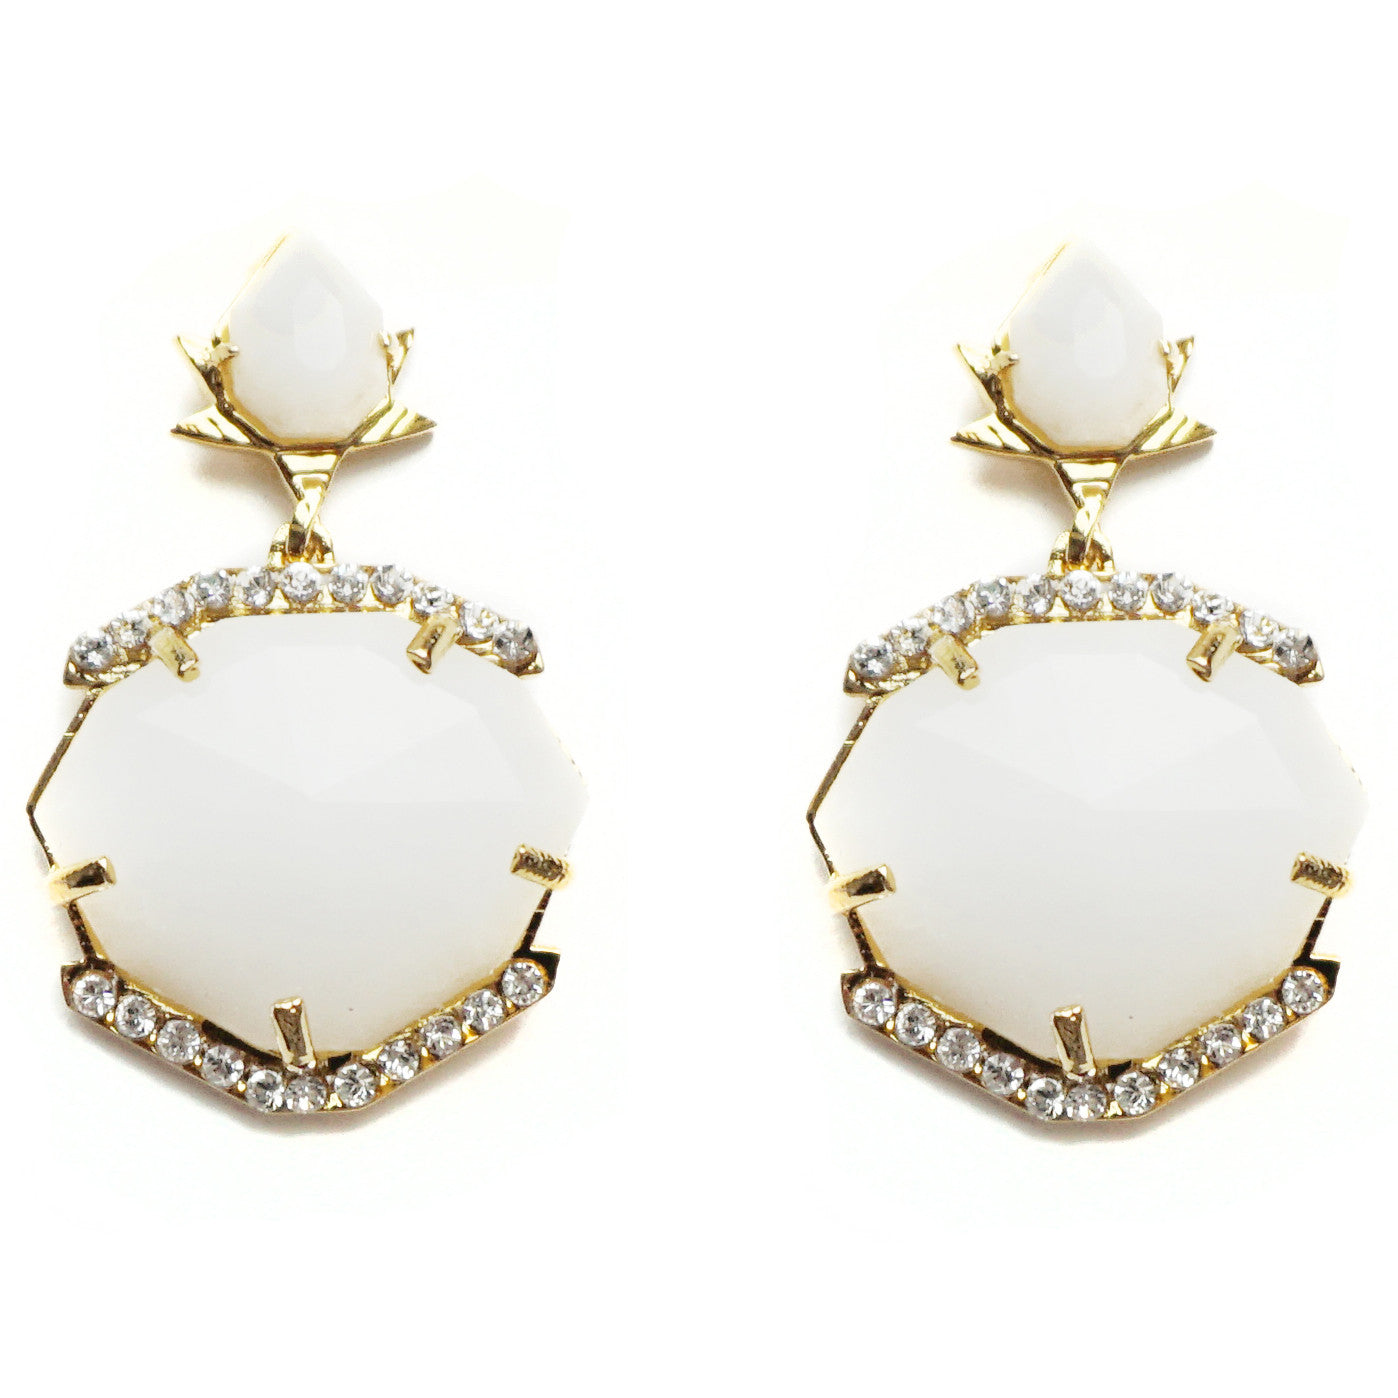 CAROLYN COLBY - WHITE AVENTURINE DOUBLE GEM DROP EARRINGS